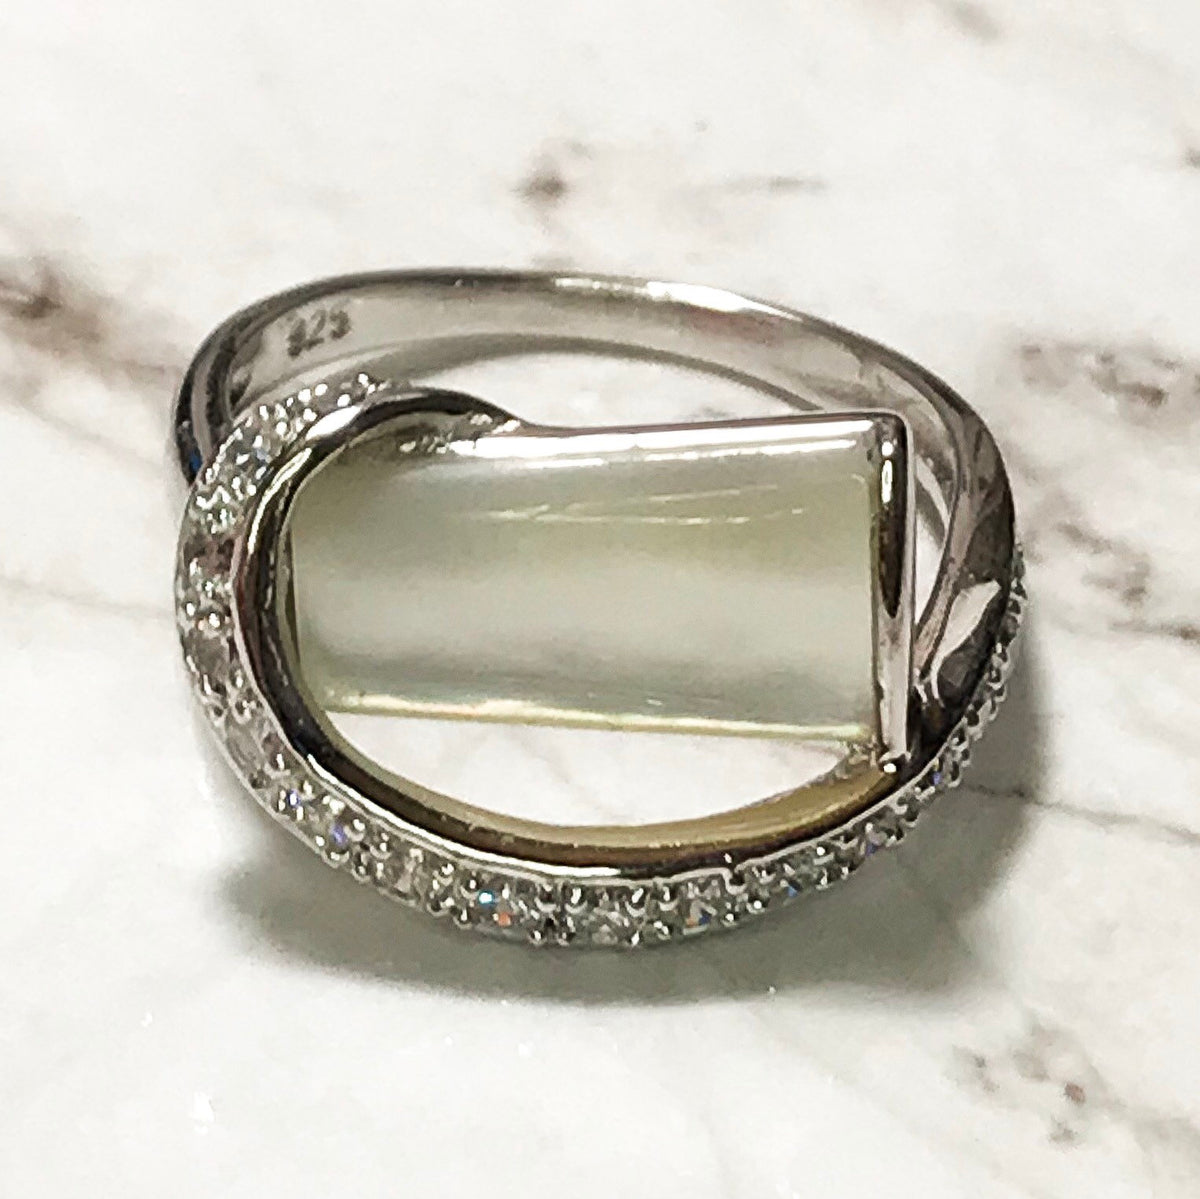 NEW 14k White Gold Layered on Sterling Silver Rectangular Shiny White Stone Ring